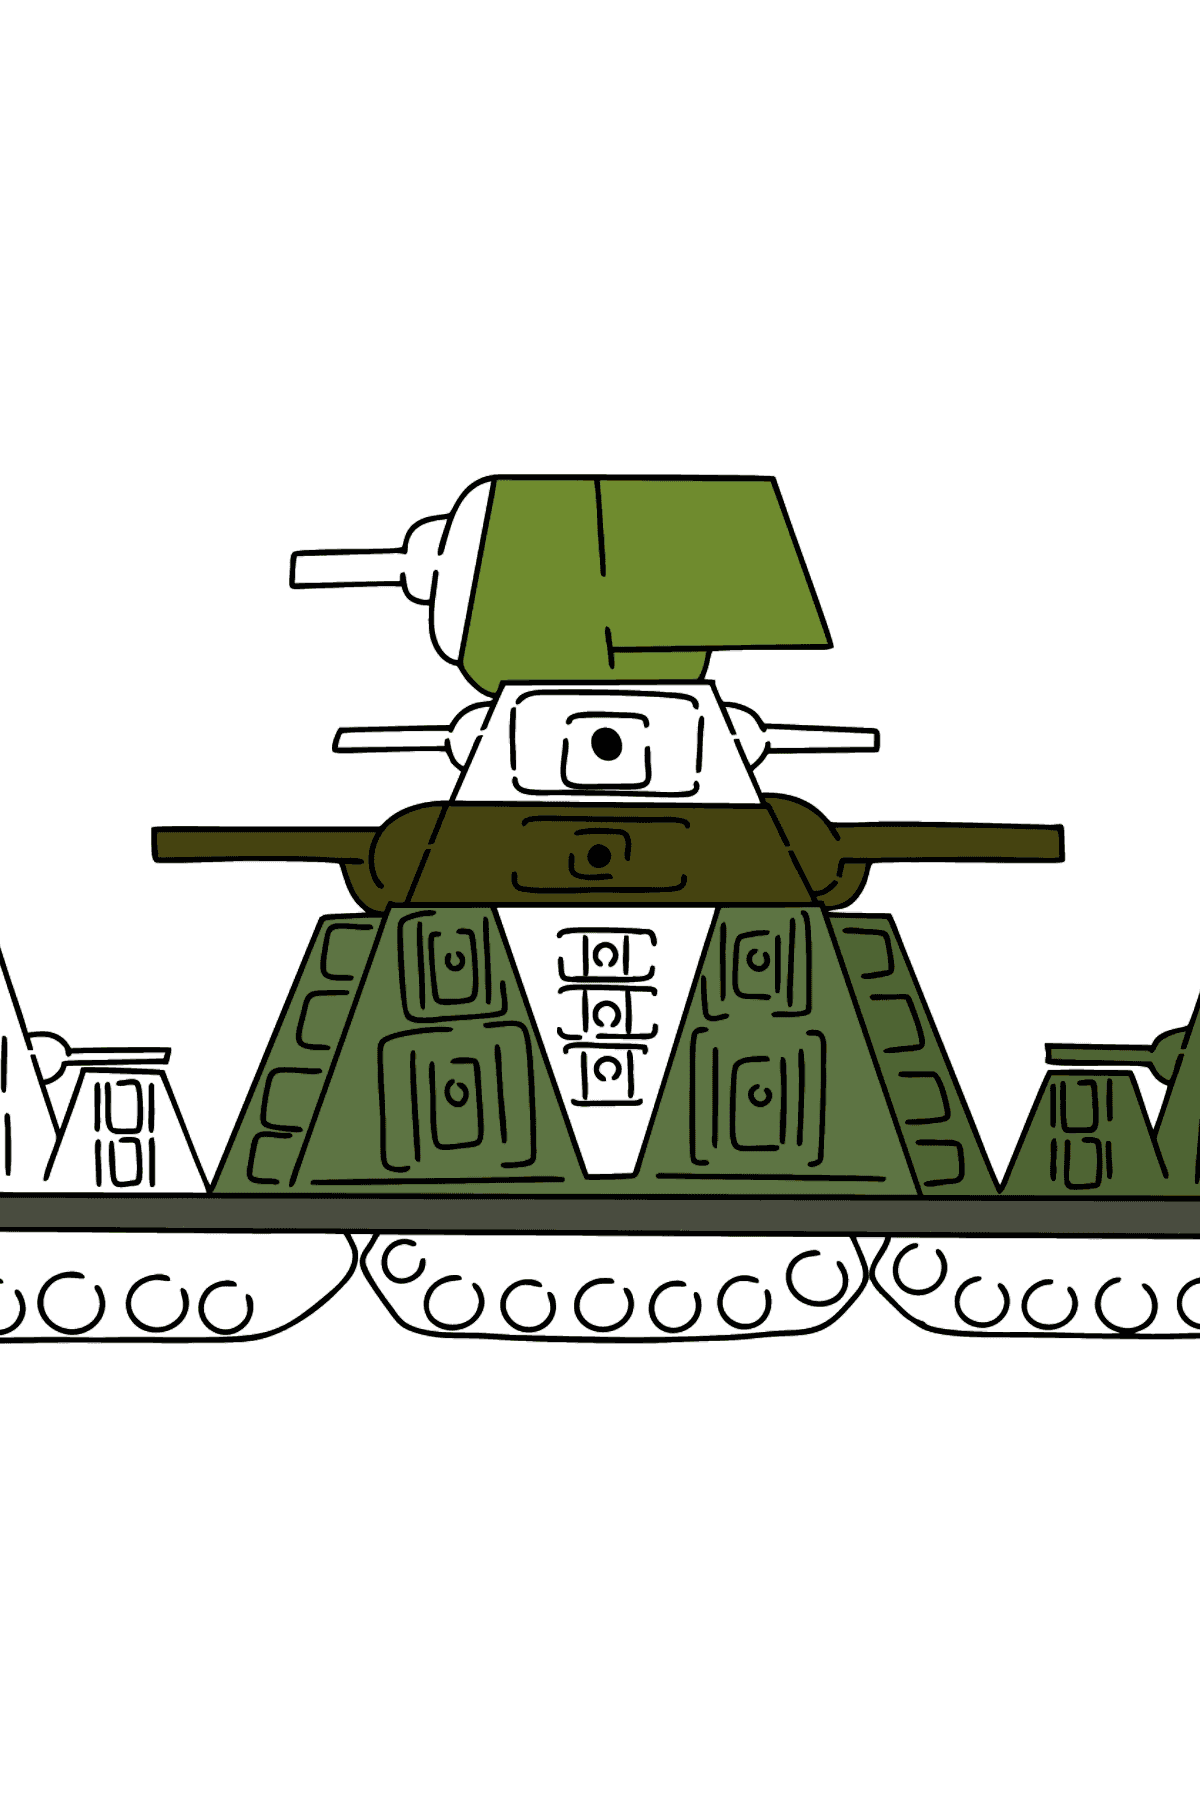 Tank KV 44 coloring page - Coloring Pages for Kids